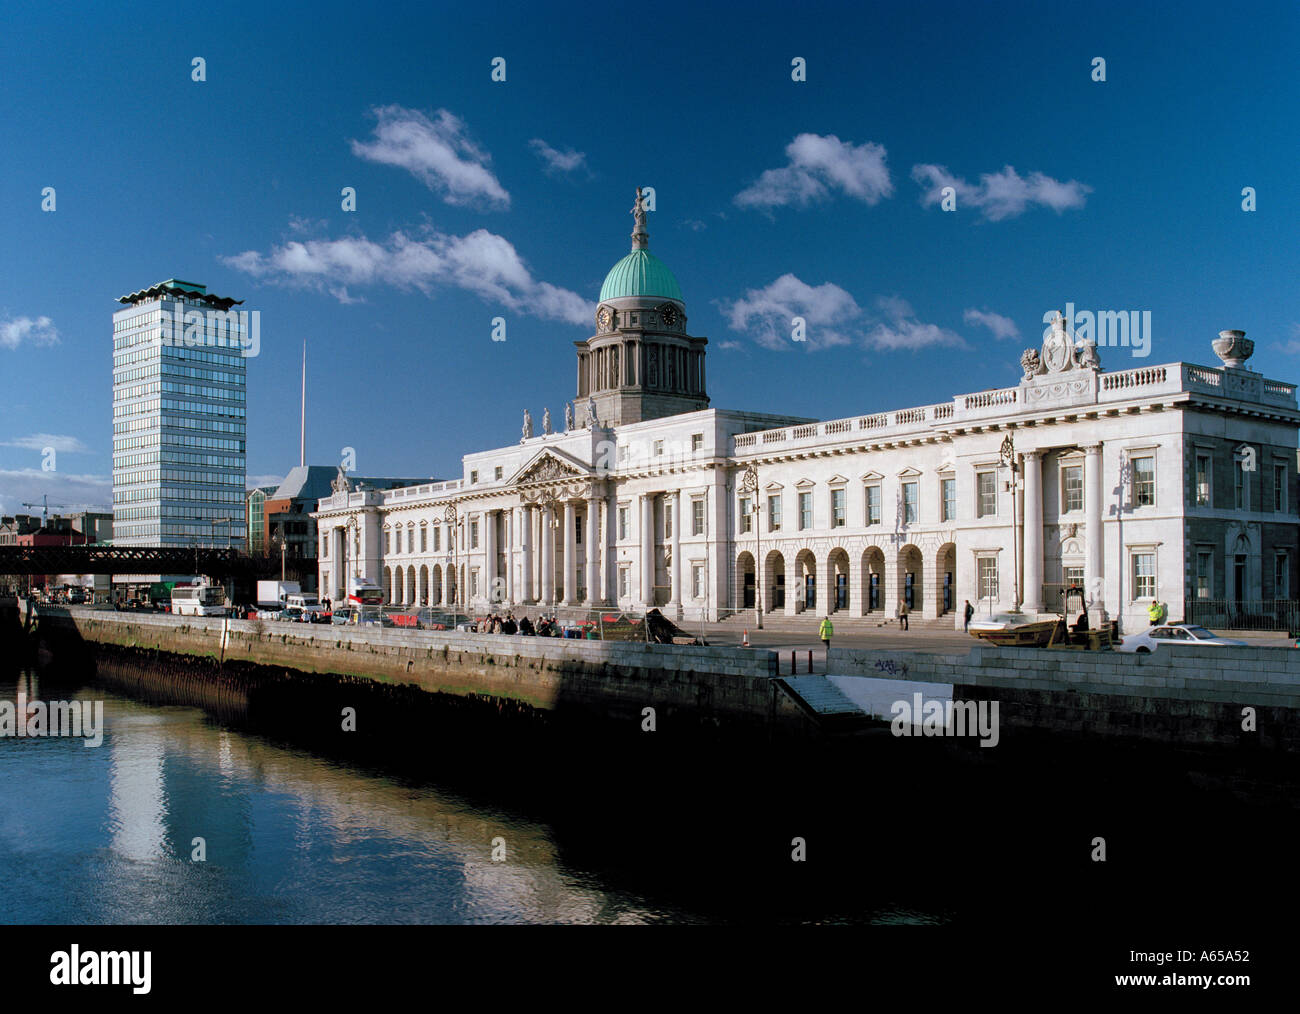 The Spire of Dublin between Liberty Hall and the Customs House - Dublin, Ireland - Stock Image